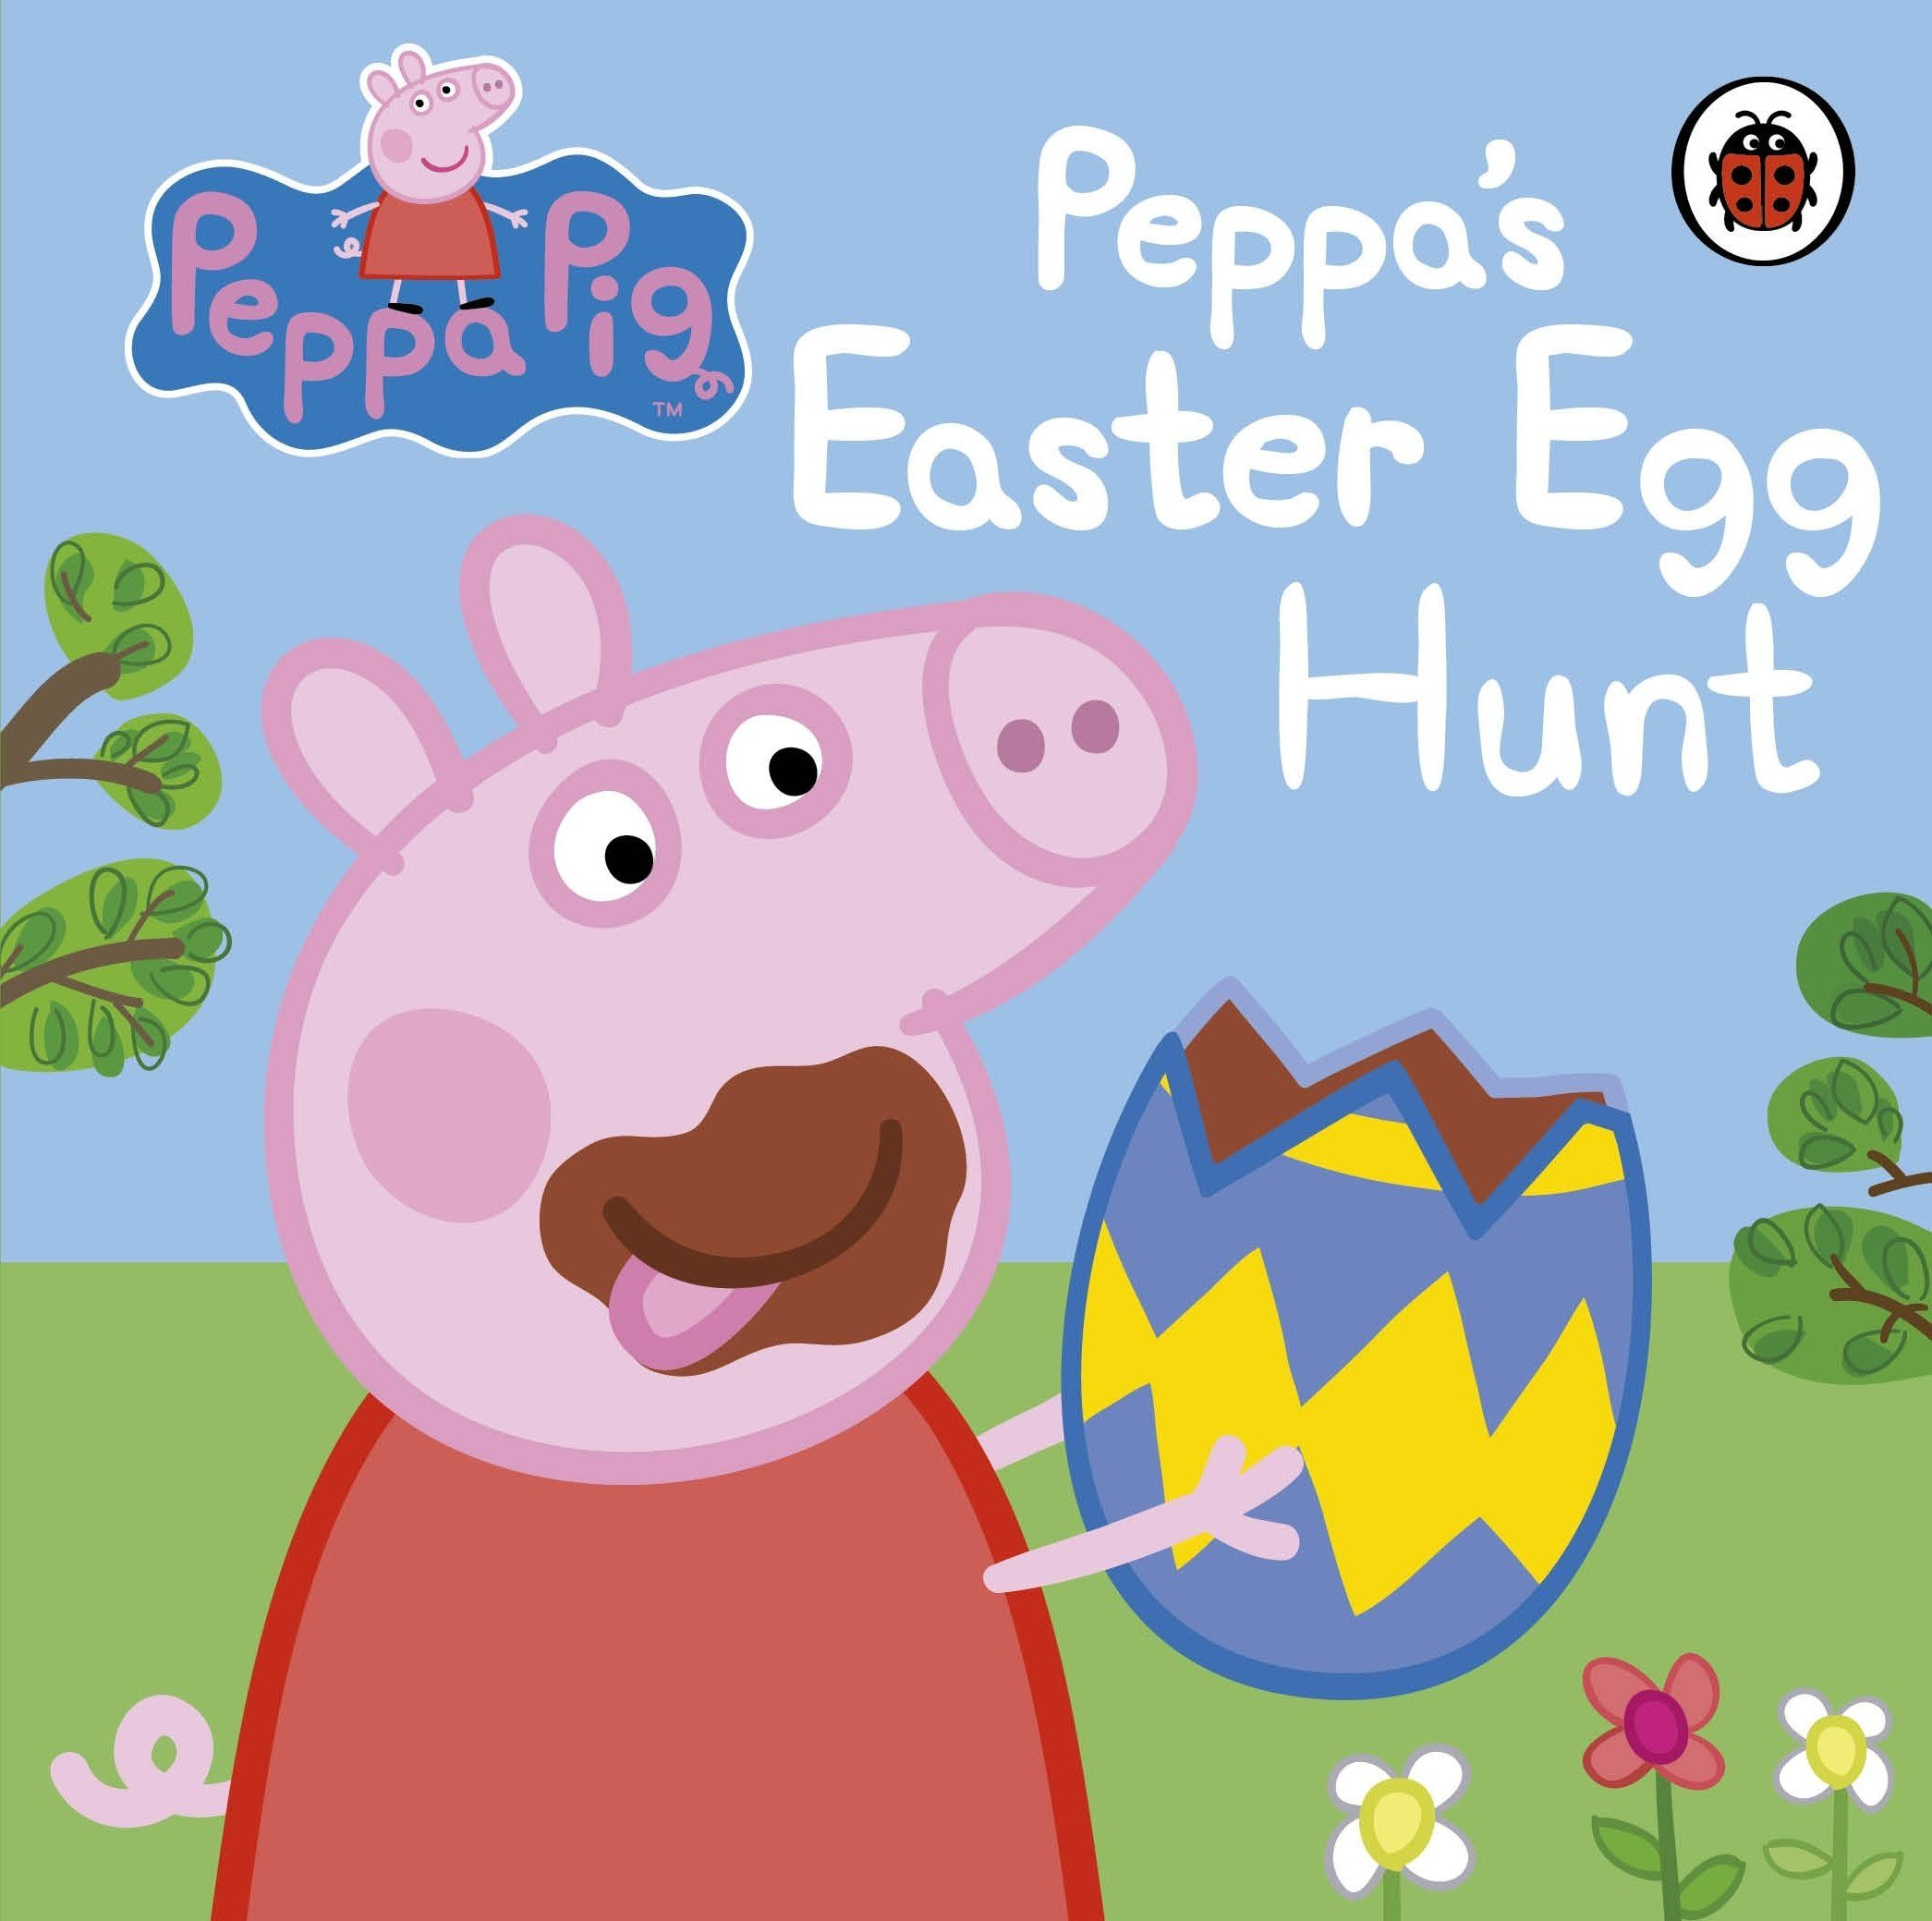 Peppa pig peppaus easter egg hunt board book u mar